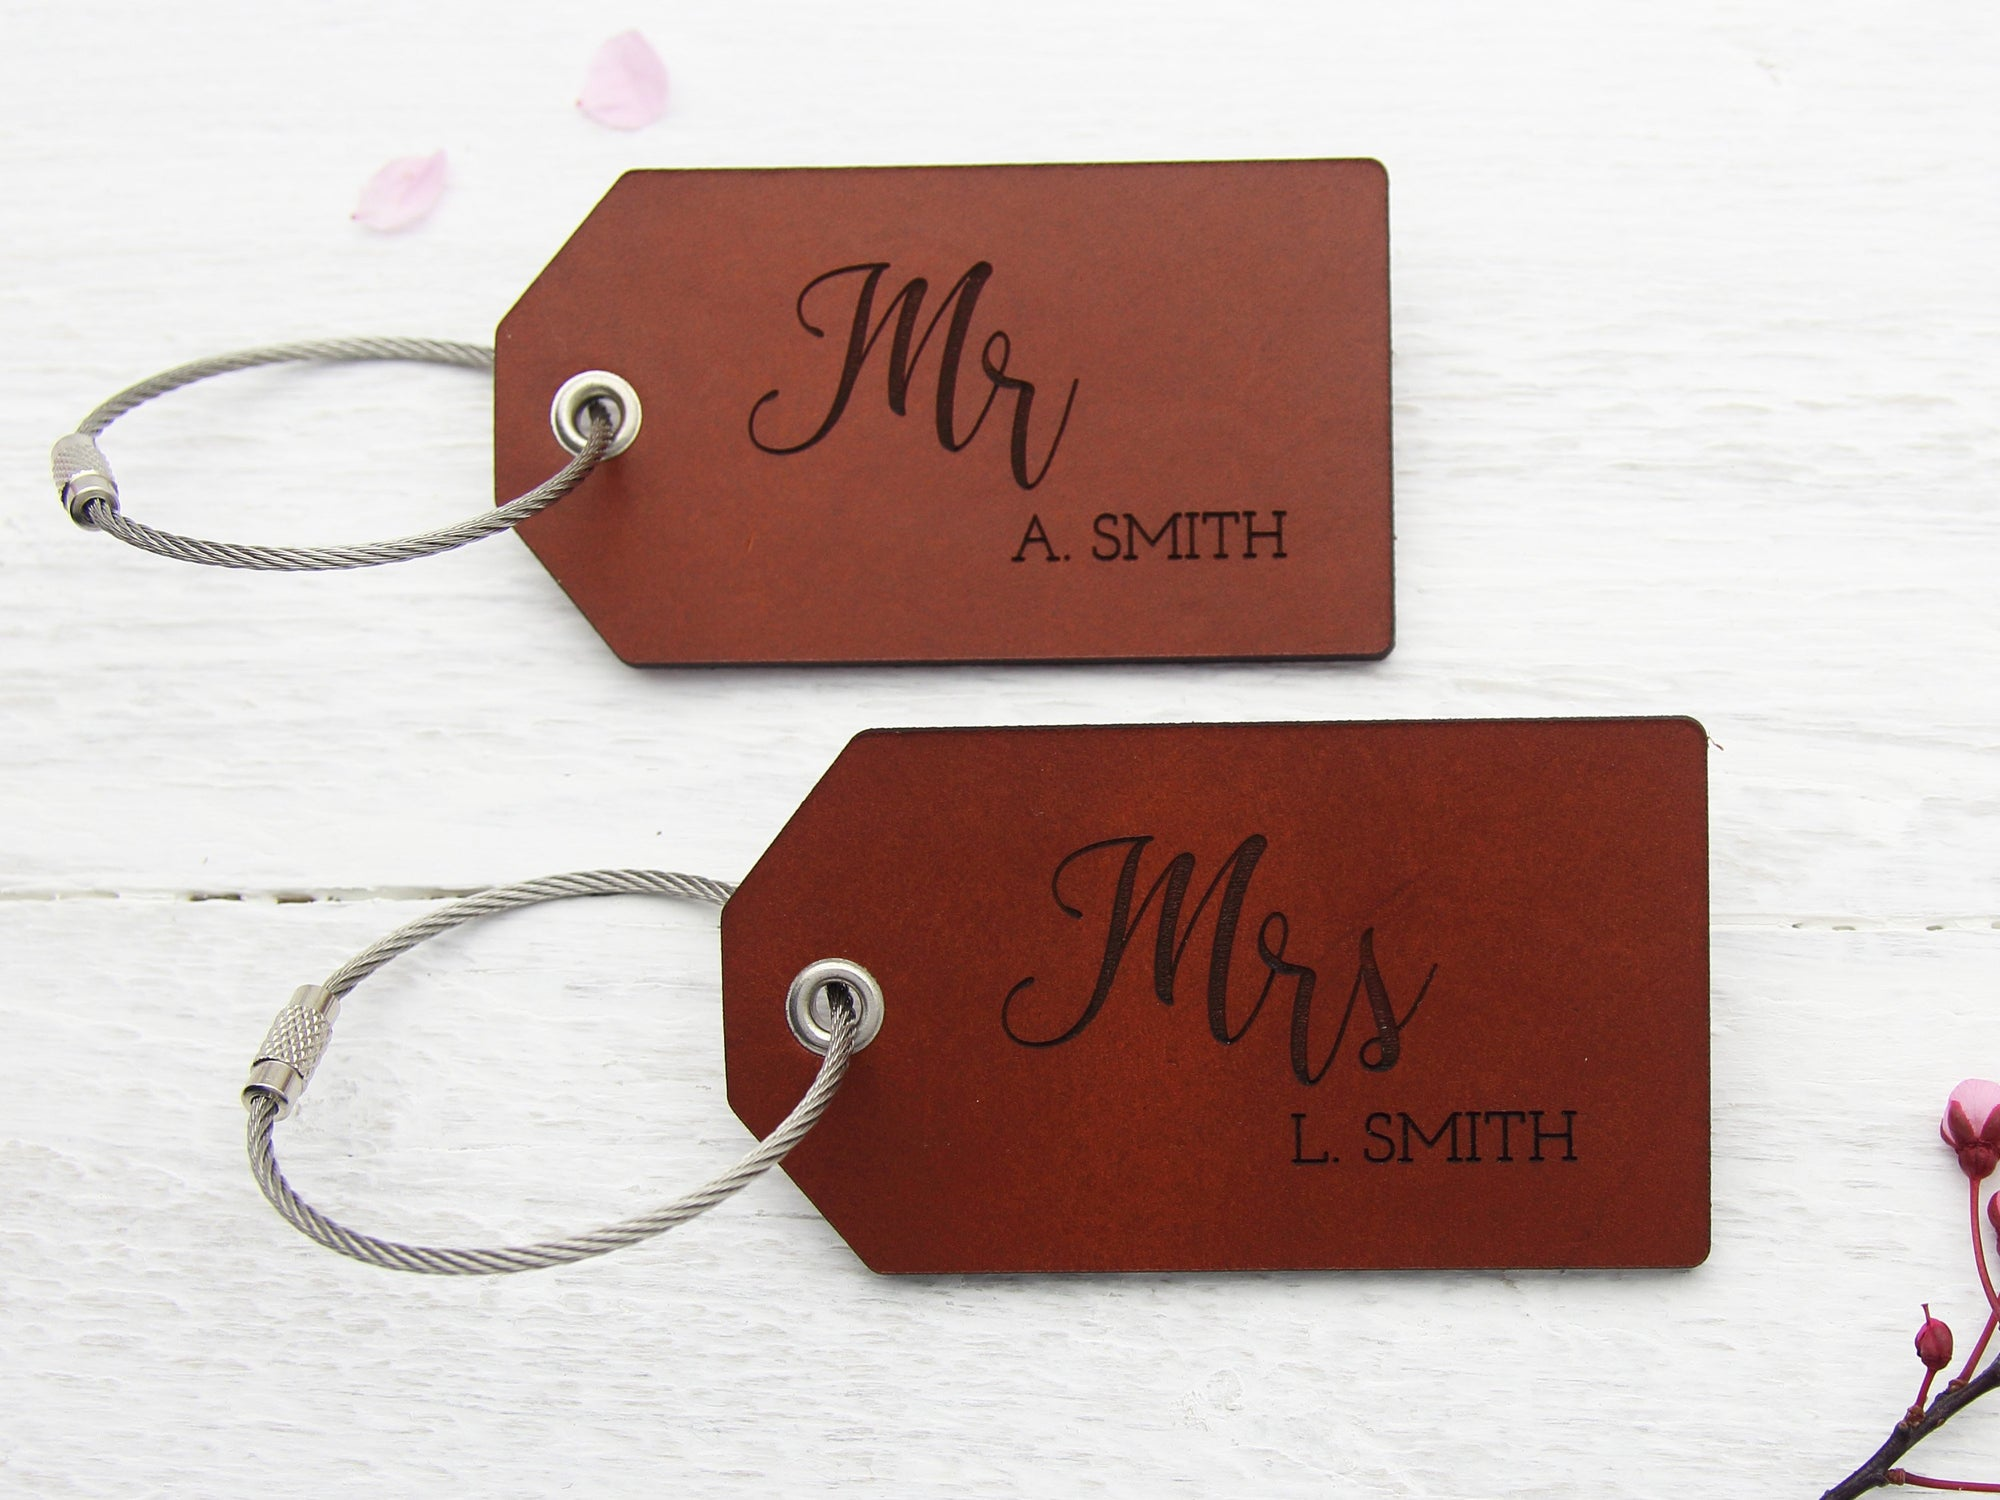 His and hers luggage tags